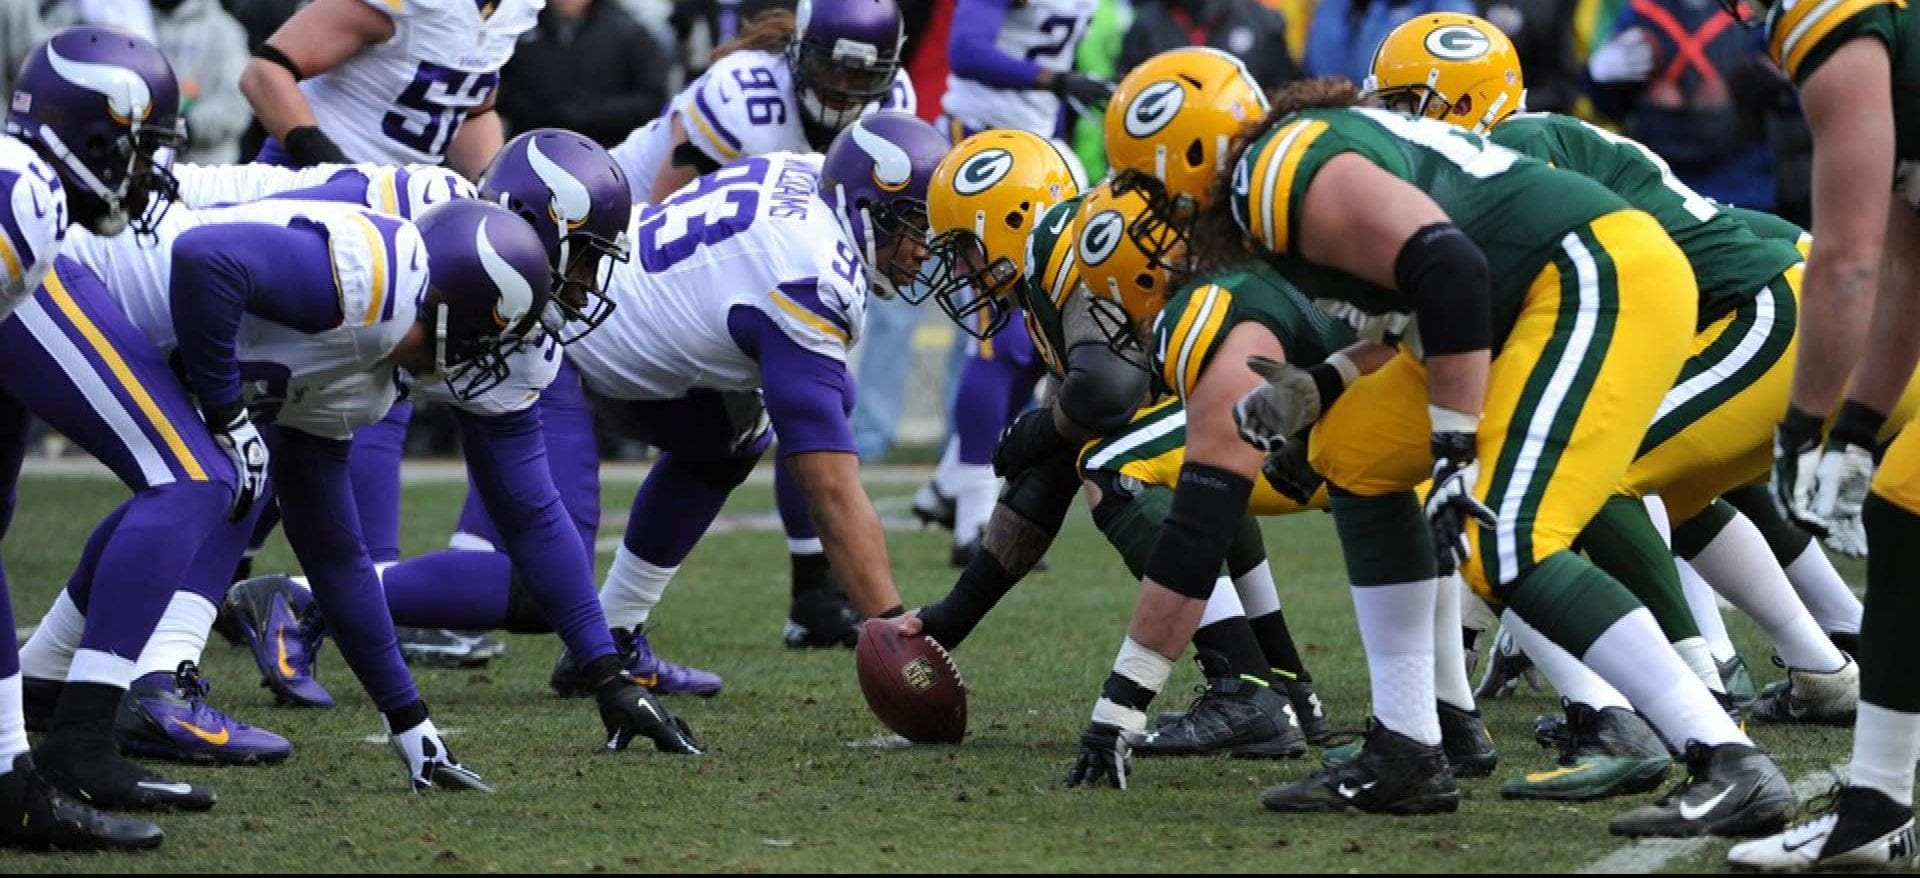 https://news.sportsinteraction.com/wp-content/uploads/2018/11/vikings-v-packers-e1542637857570.jpg